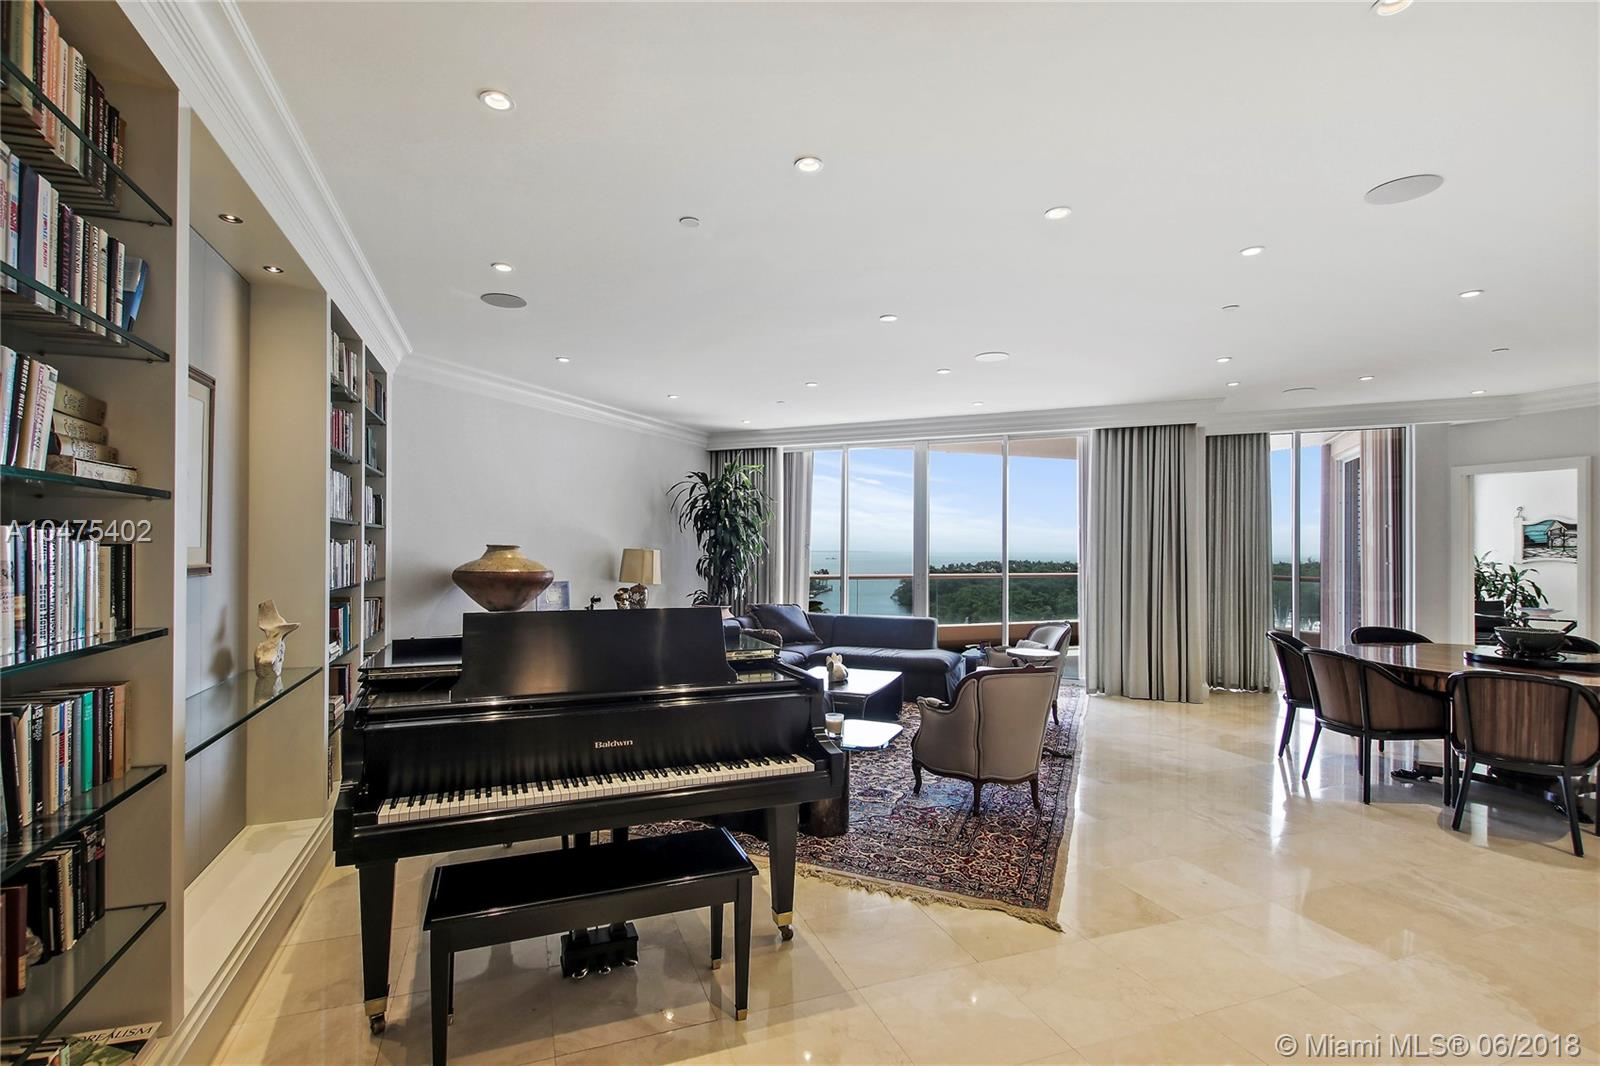 Marvel In The Spectacular View Of The Bay, Miami Beach, Key Biscayne, Downtown Miami And Coconut Grove From This Renovated 9Th Floor Condo. Enjoy The Exquisite Elegant Finishes Of Millwork And Details. Lounge In The Master Bedroom Featuring An Oversized Walk In Closet Plus A Night Bathroom. Entertain In The Den With A Bar Area And Plantation Shutters For Privacy. The Gables Club Boasts 24/7 Security With A Guard Gate, Valet, Concierge, Restaurant, Spa, Exercise Rooms, 4 Tennis Courts, 2 Pools And Privacy With Elevators Arriving In Each Unit. A Pleasure To Show!